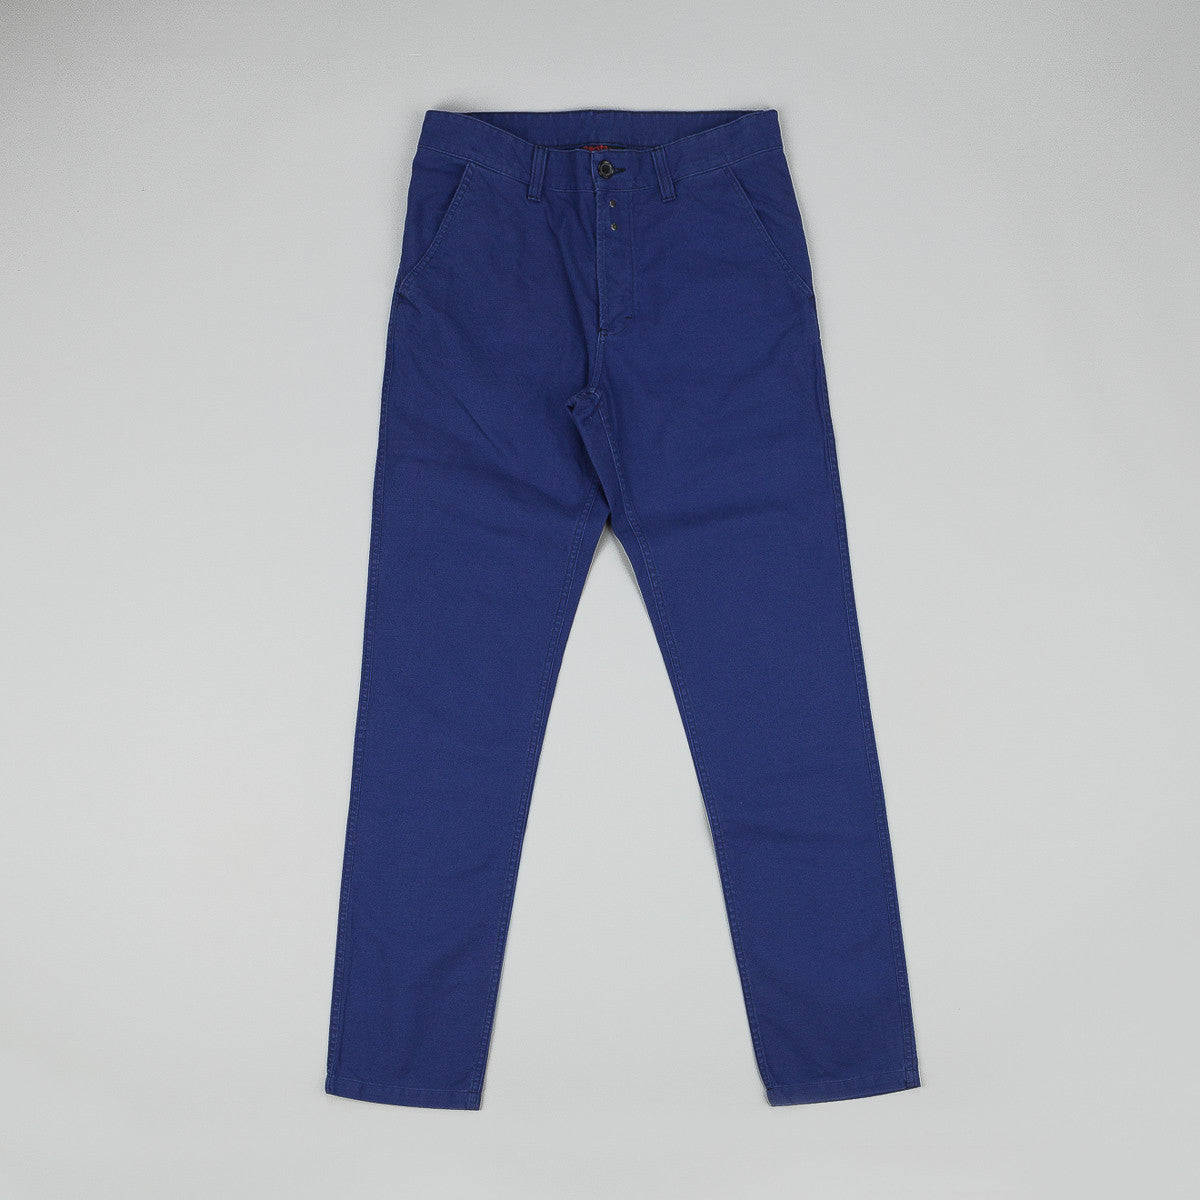 Vetra Hydrone Trousers